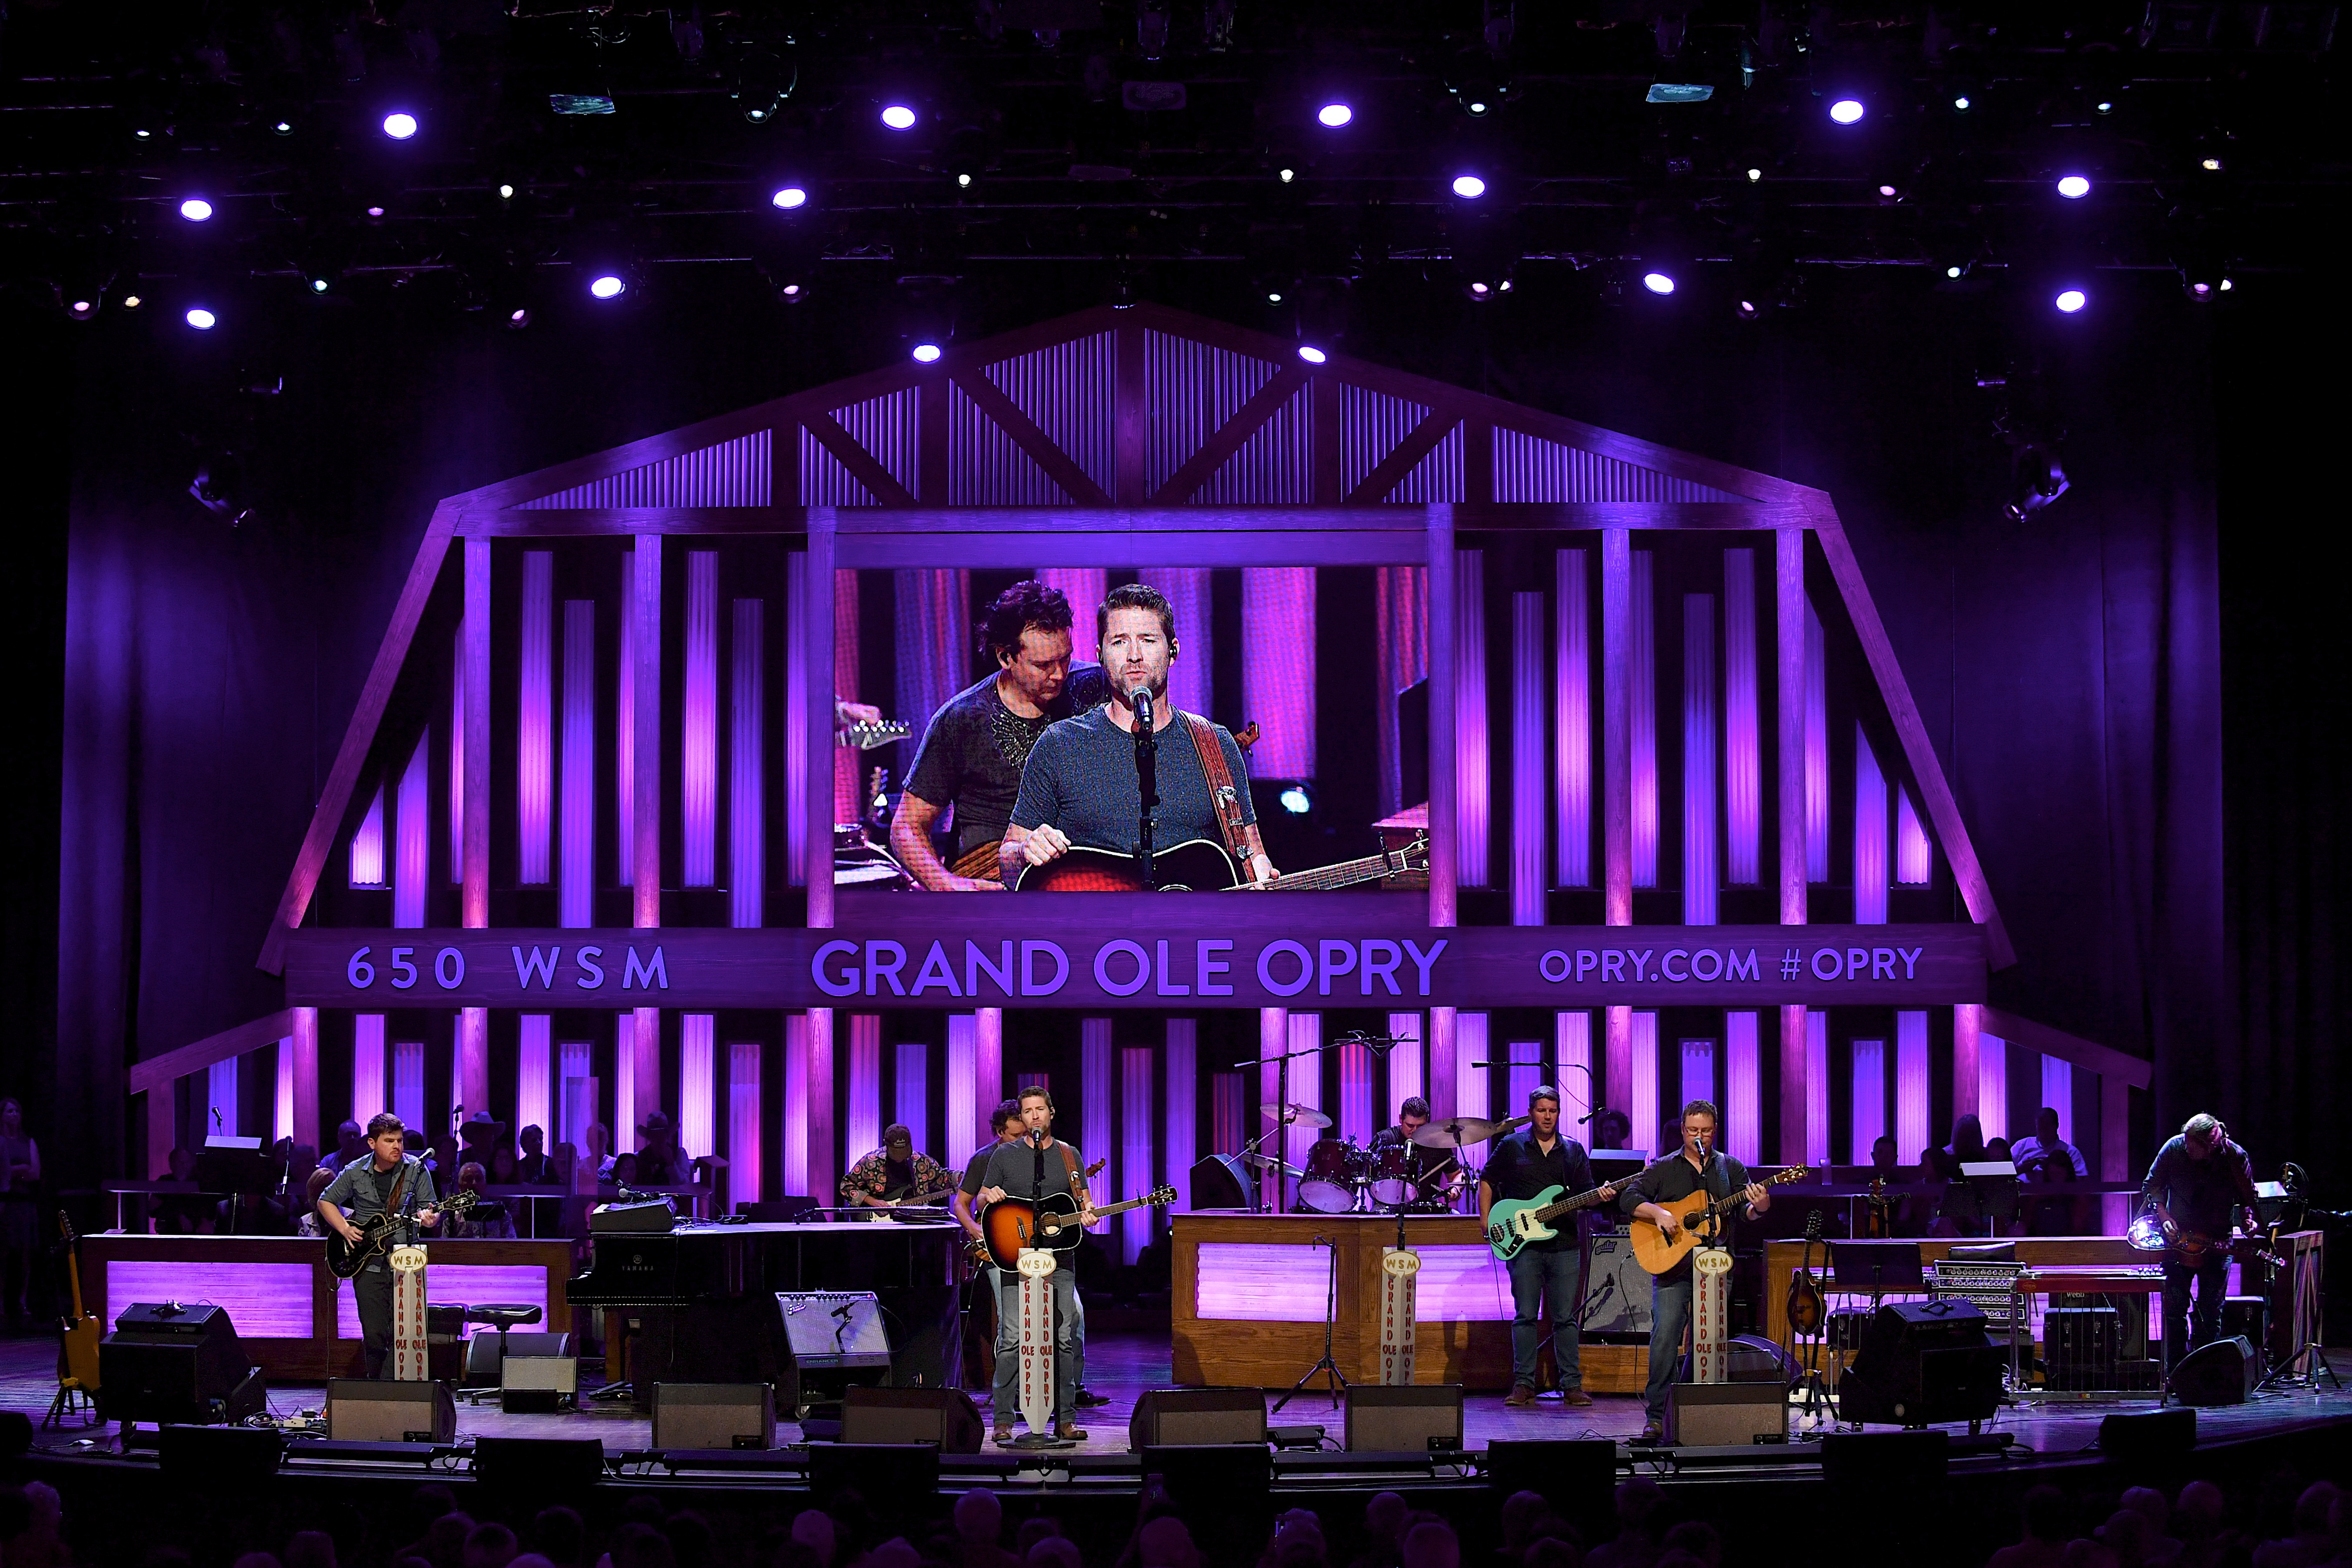 The Grand Ole Opry to Undergo $12 Million Renovation